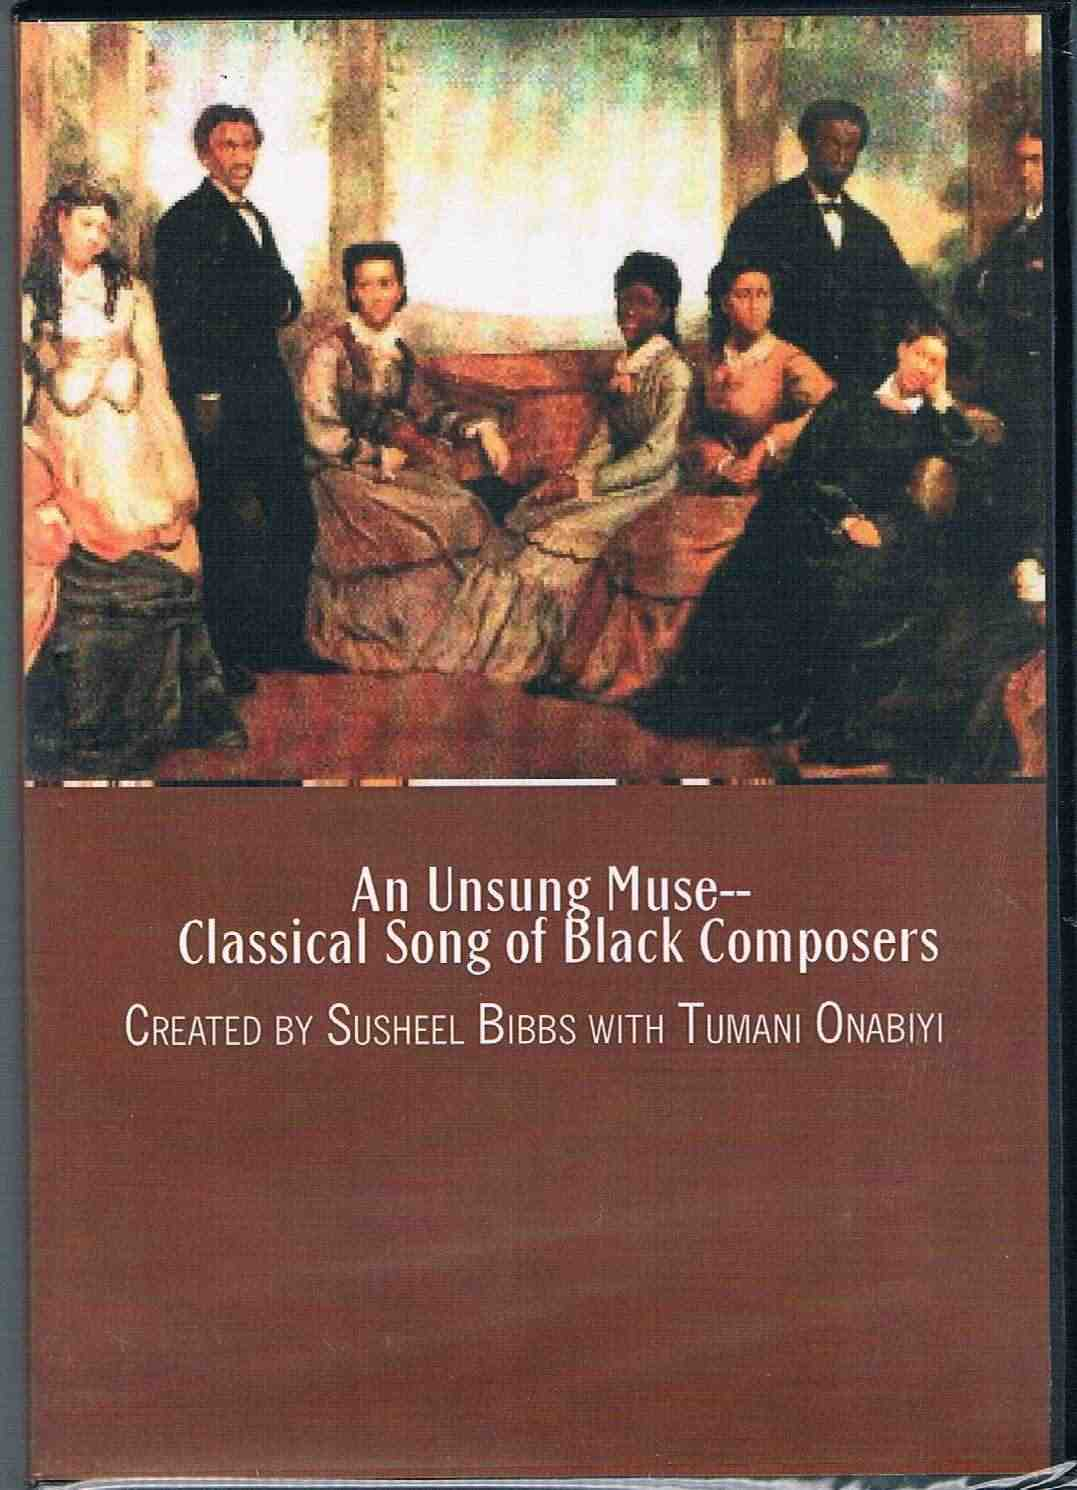 An Unsung Muse--Classical Song of Black Composers